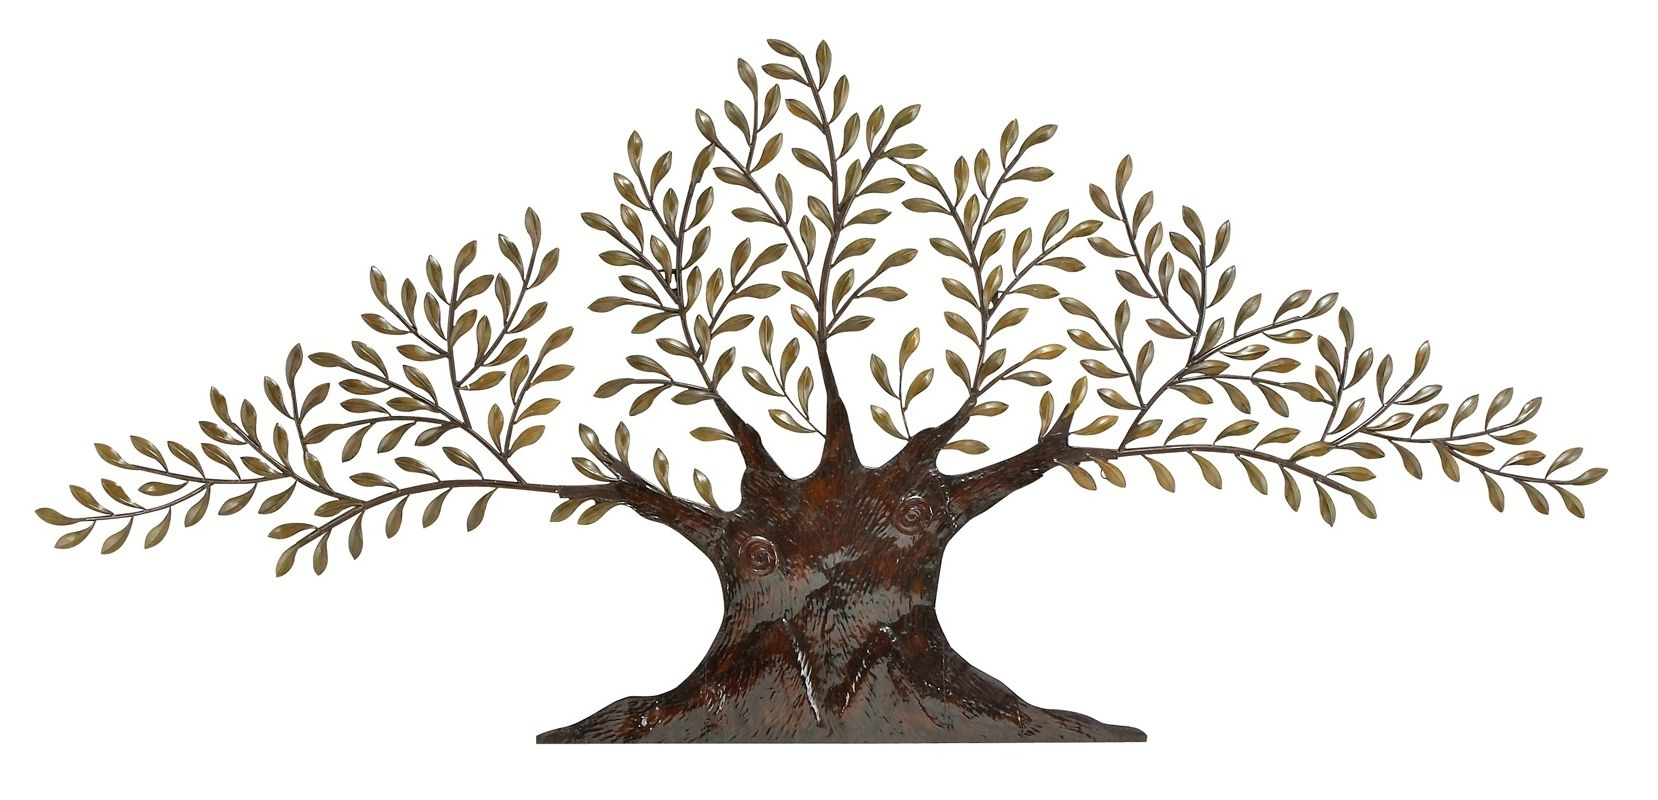 Aspire Home Accents 68501 Large Metal Olive Tree Wall Decor Brown /